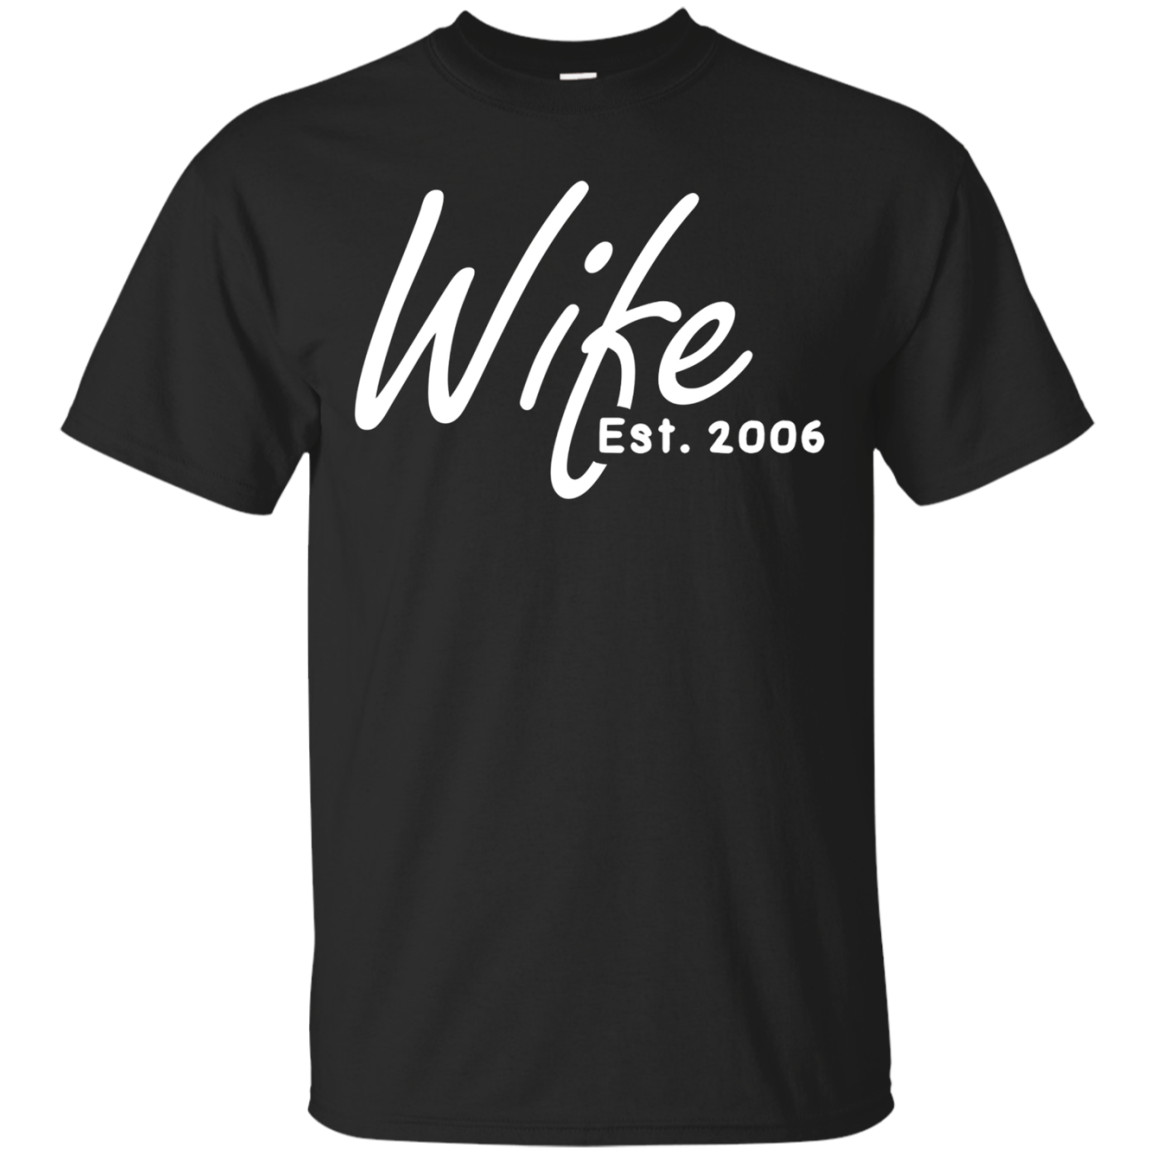 12th Wedding Anniversary Gift For Her, Wife Est 2006 Shirt